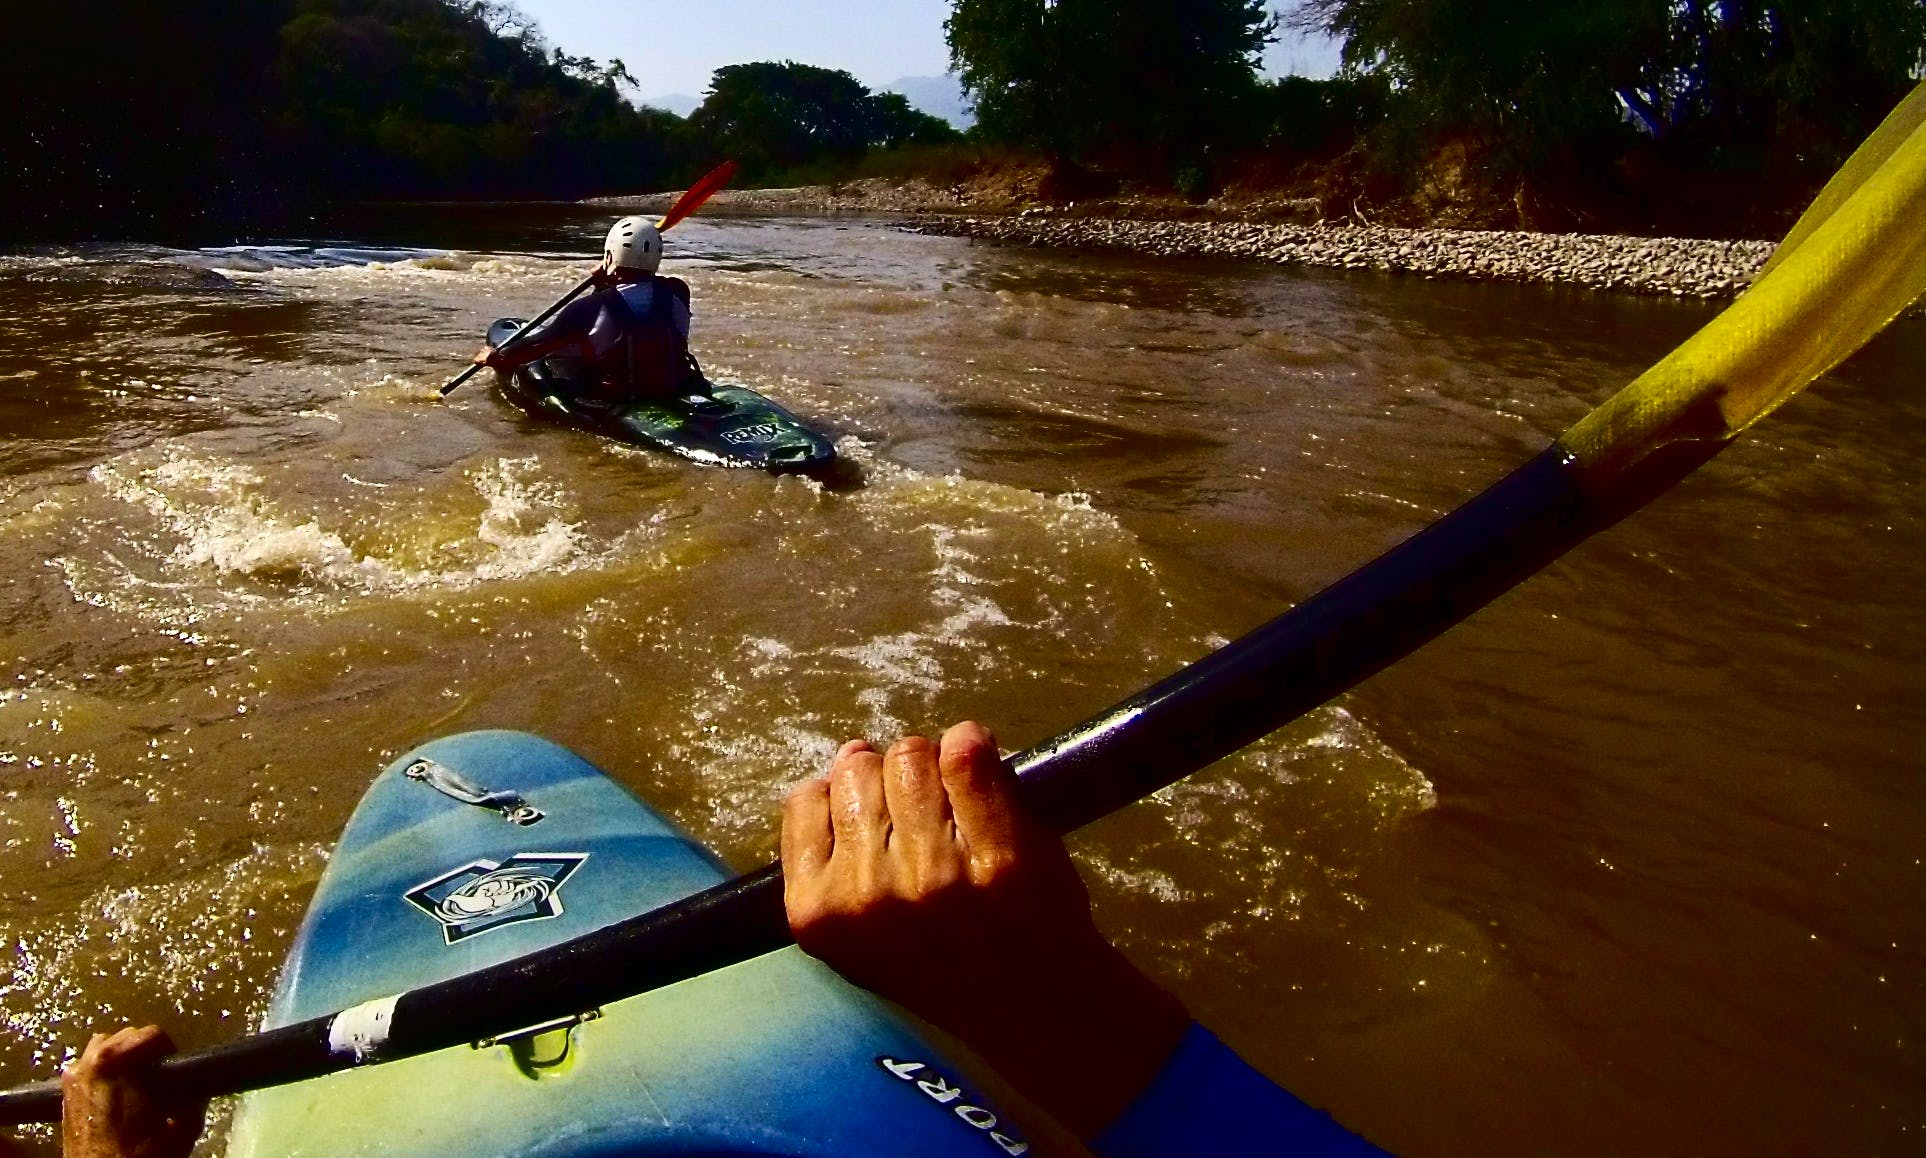 Kayak Lessons on Amacuzac River, Mexico